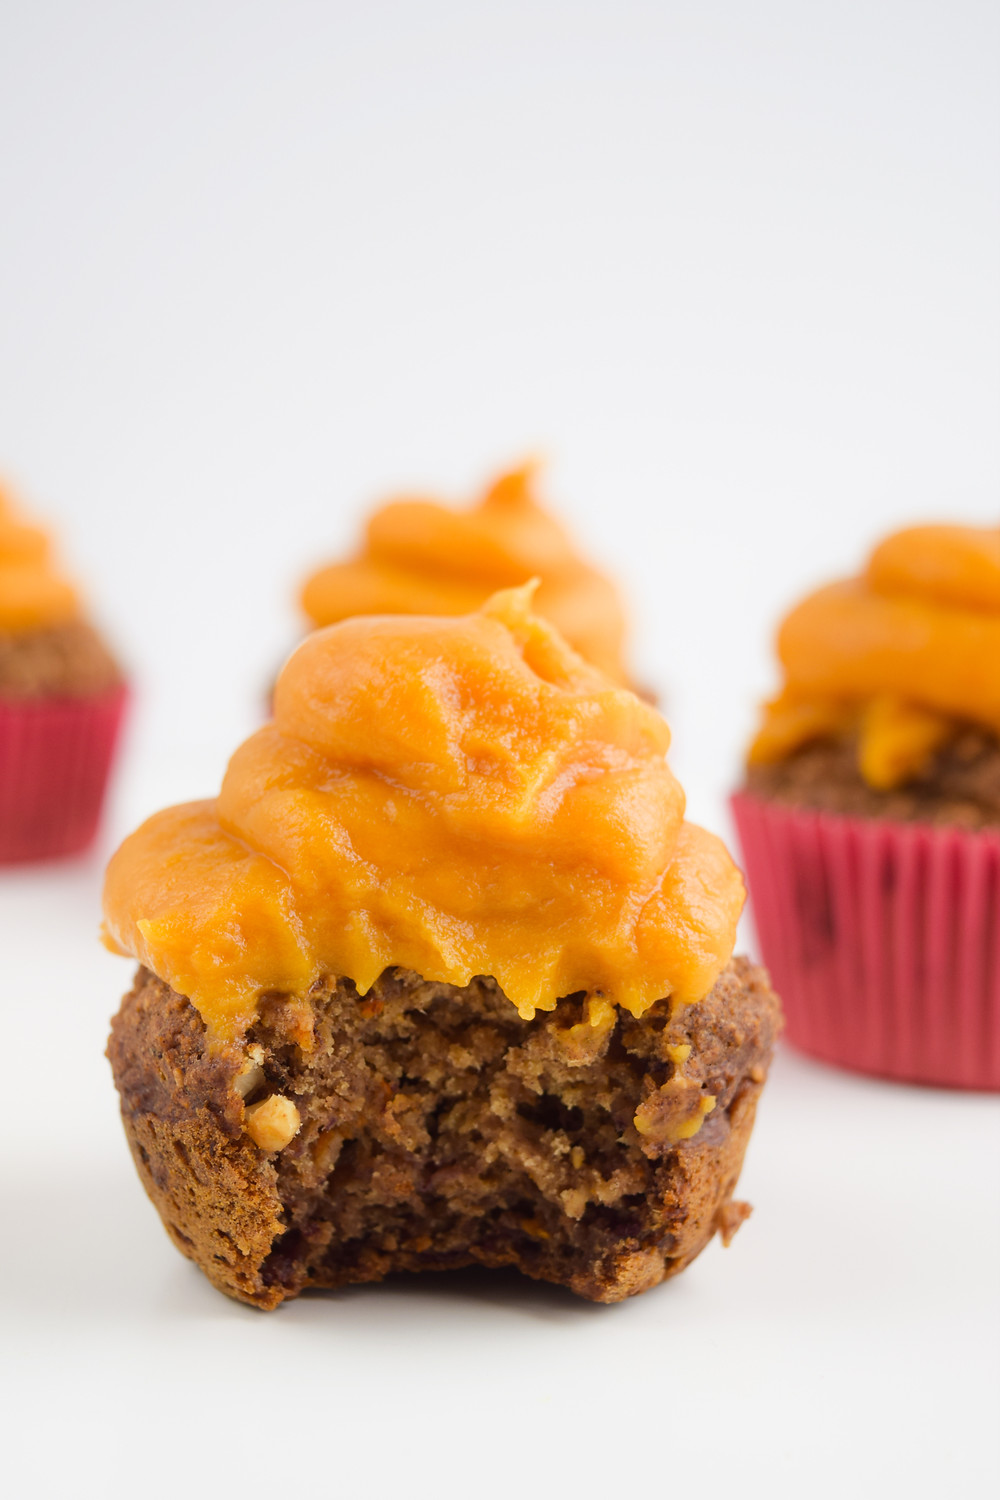 Vegan Carrot Cake Cupcakes with Sweet Potato Frosting